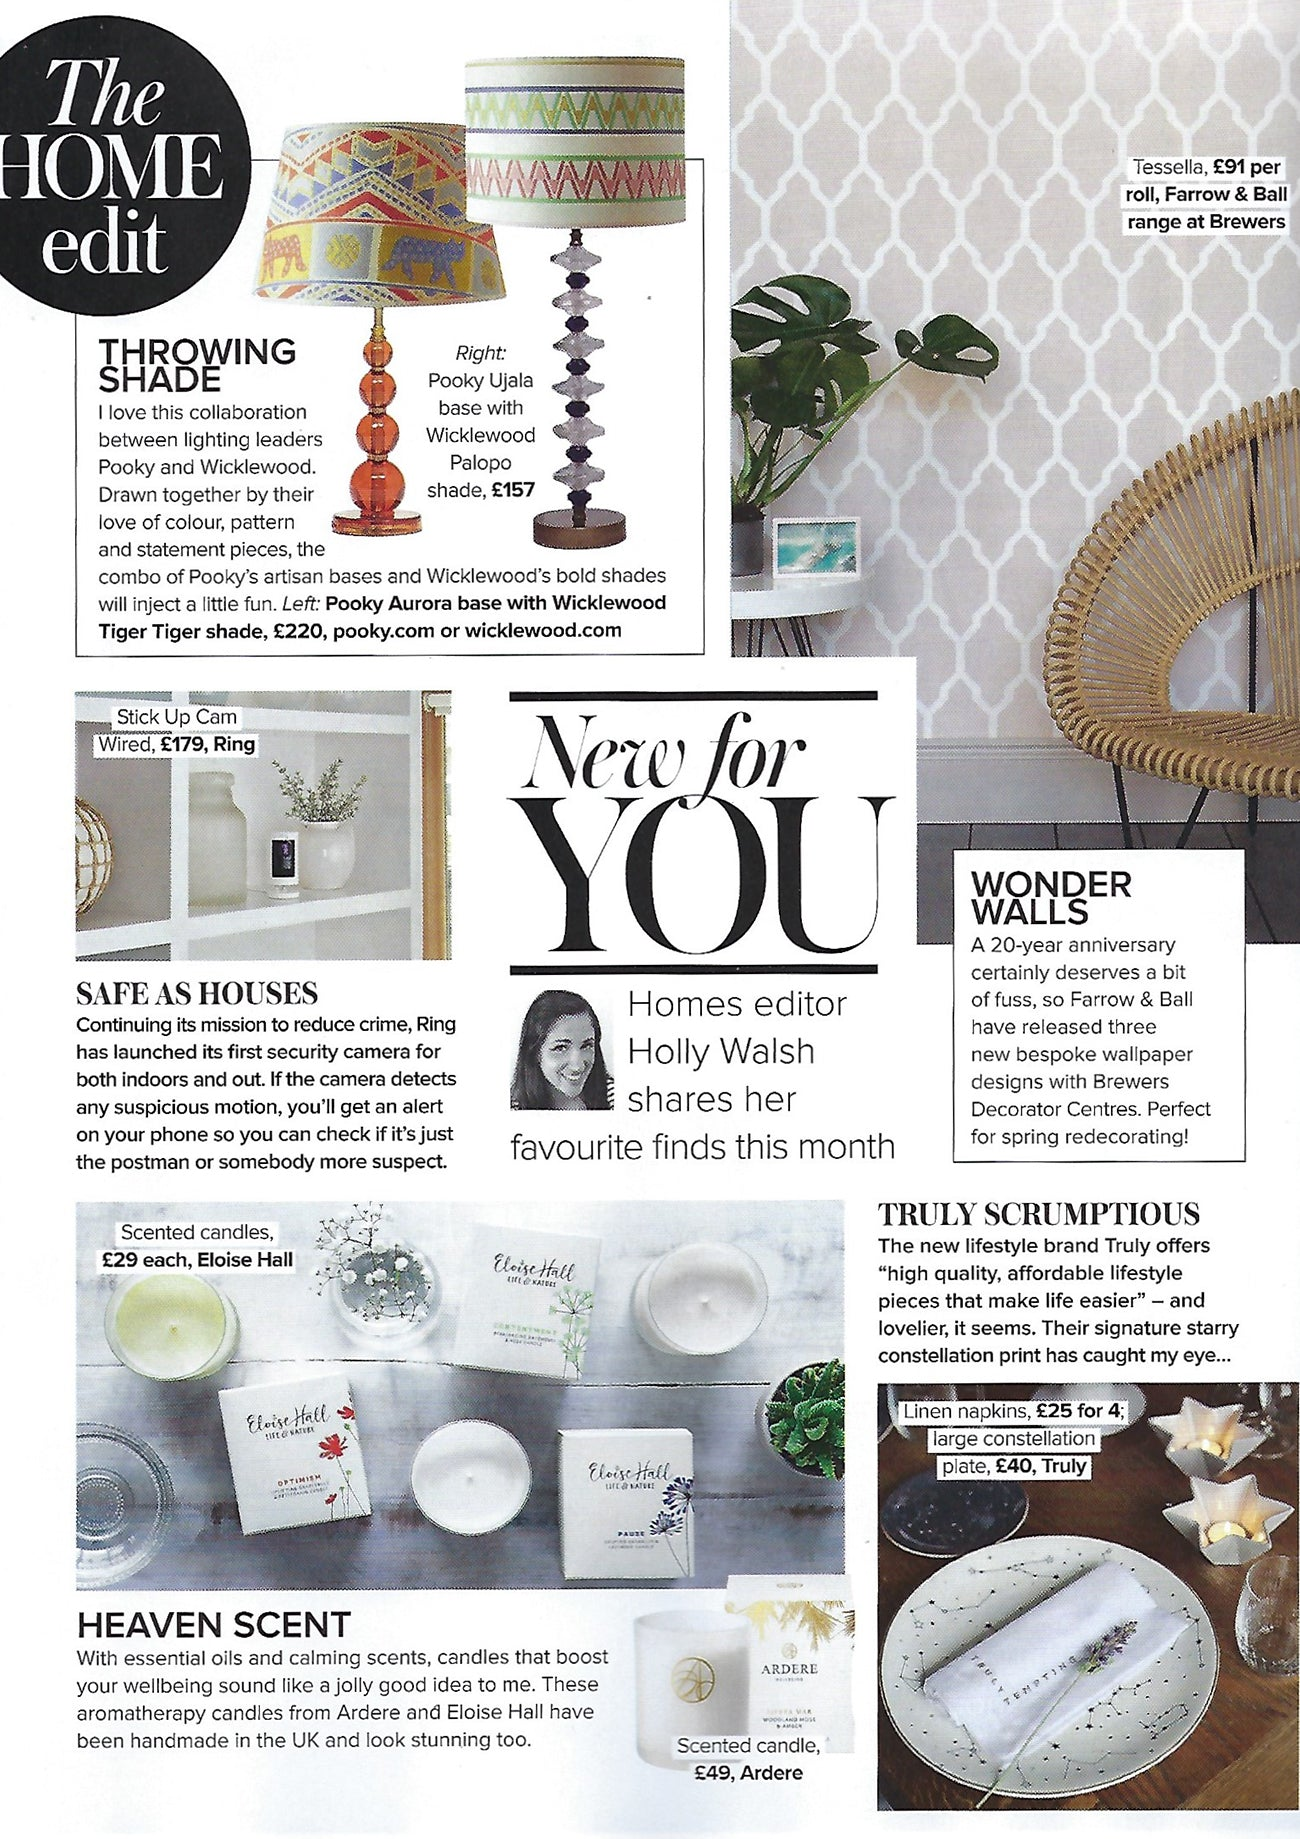 Woman and home magazine features Wicklewood x Pooky lampshades in their March 2019 issue